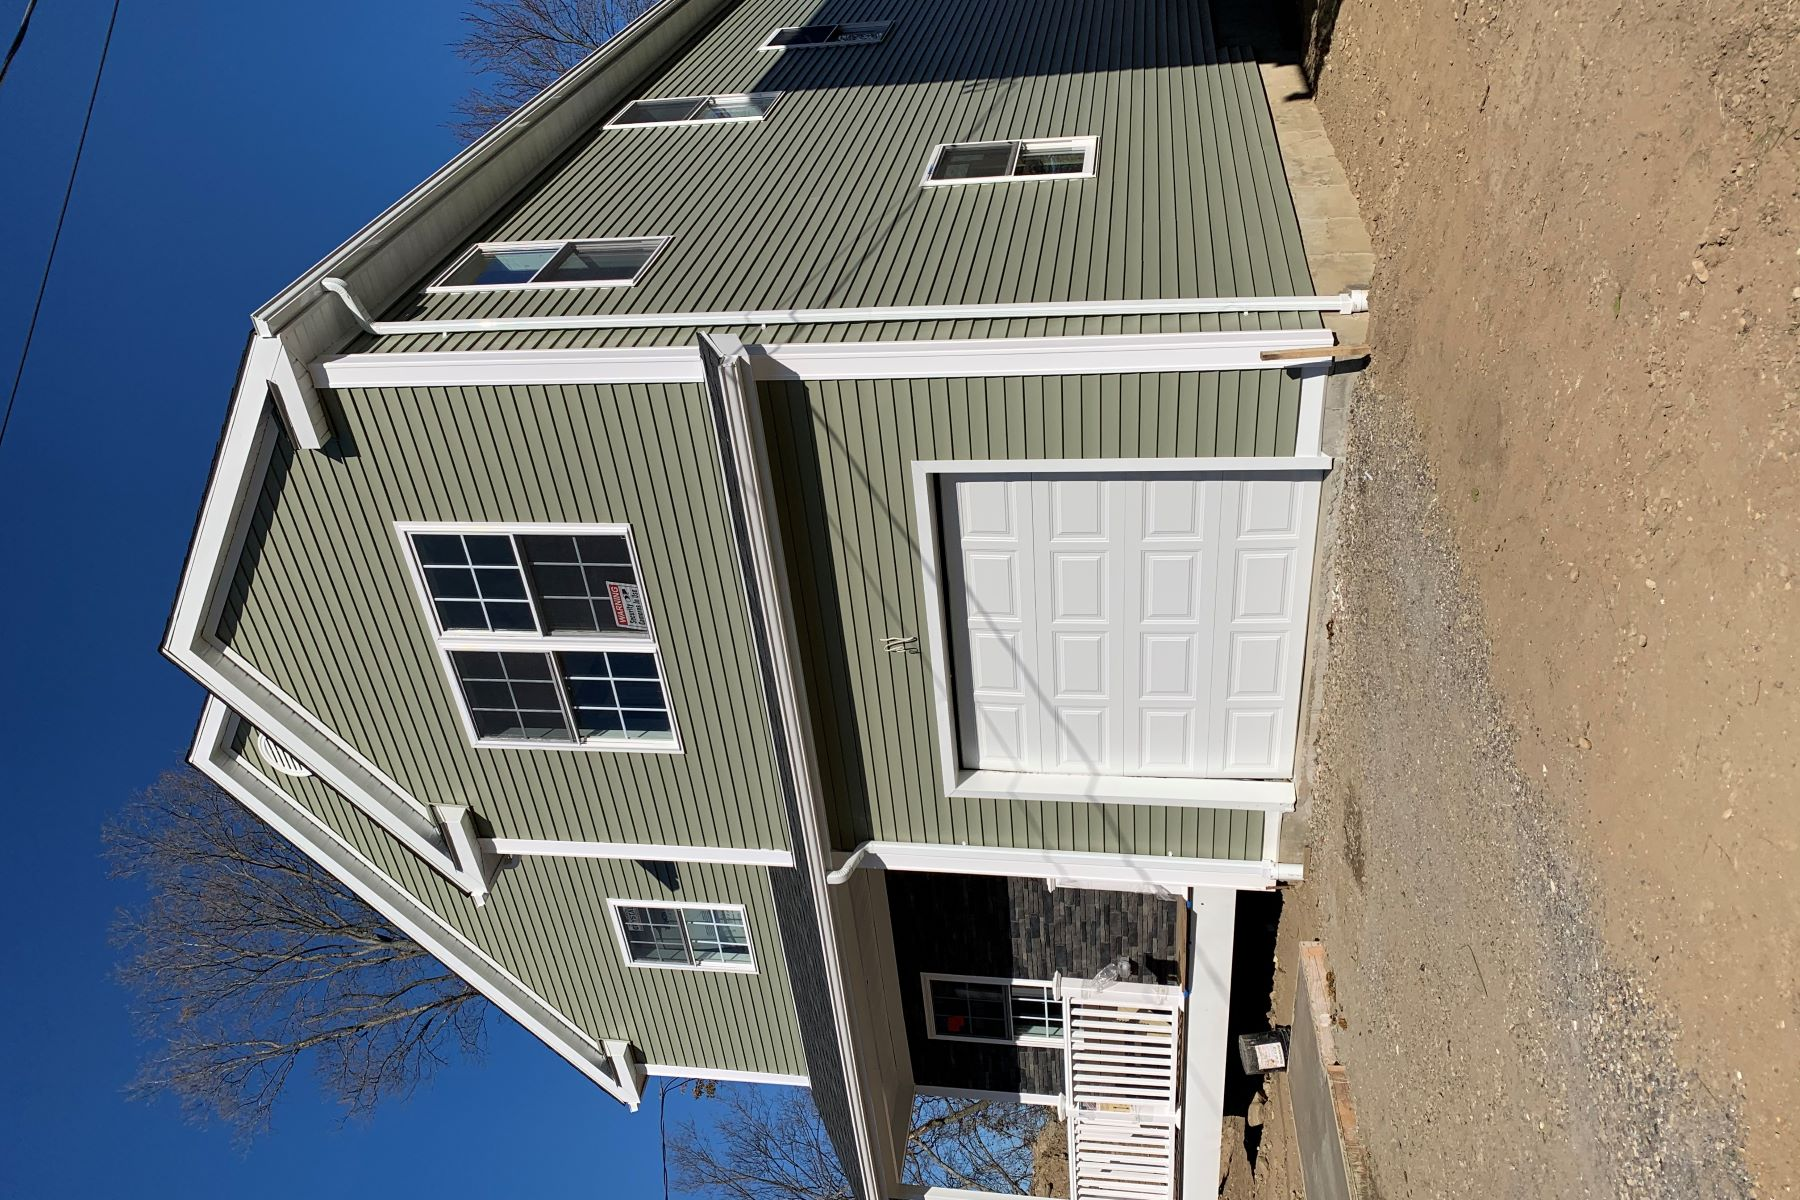 Single Family Homes for Sale at North End New Construction 726 Hart Street Bridgeport, Connecticut 06606 United States